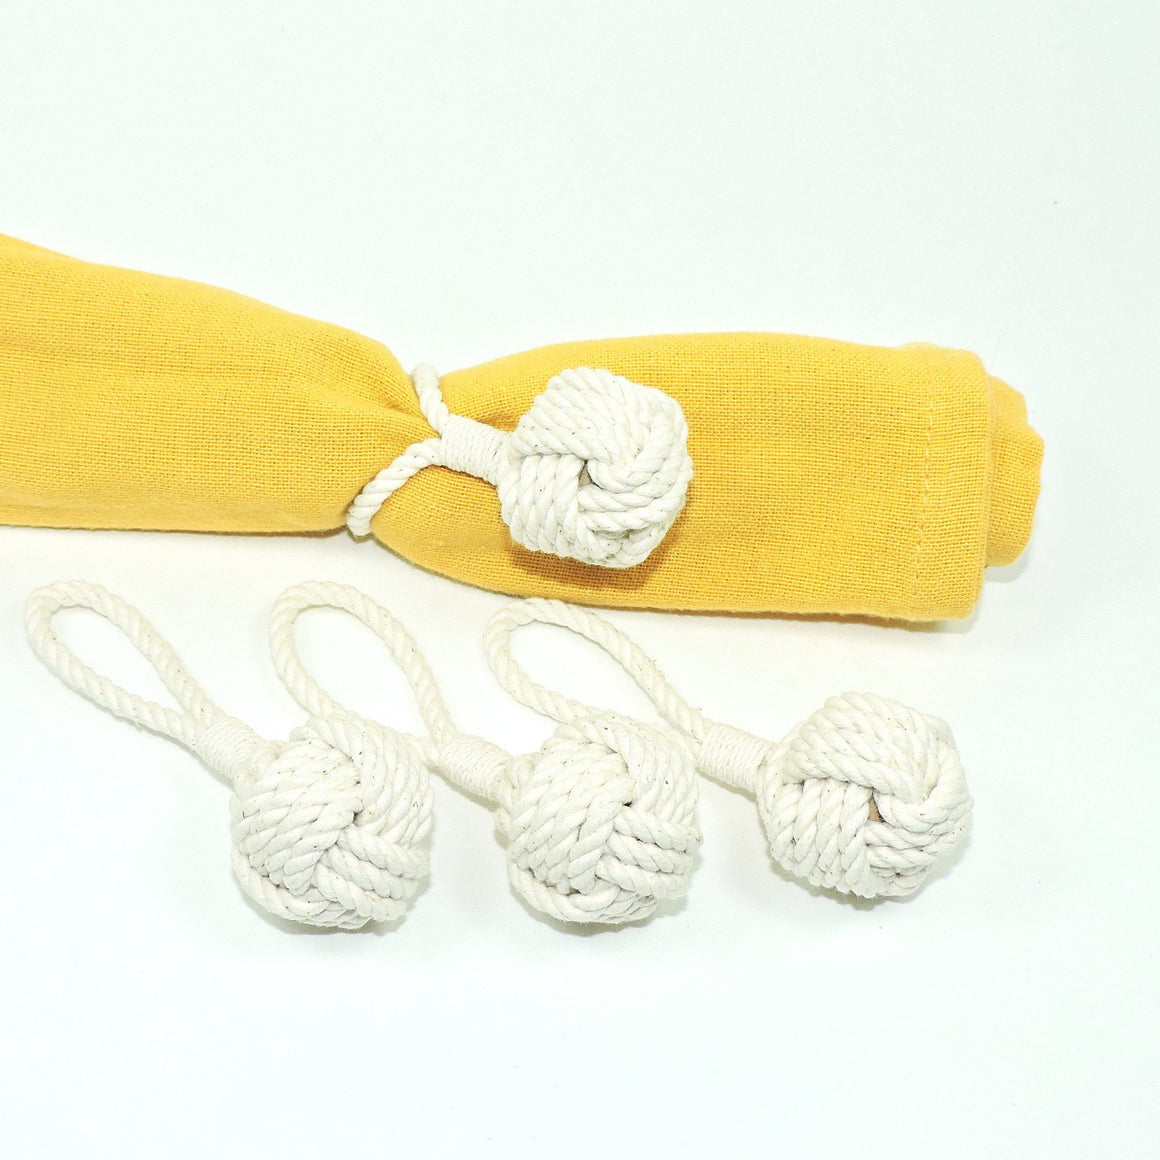 Monkey Fist Knot Napkin Rings, Set of Four - Mystic Knotwork nautical knot